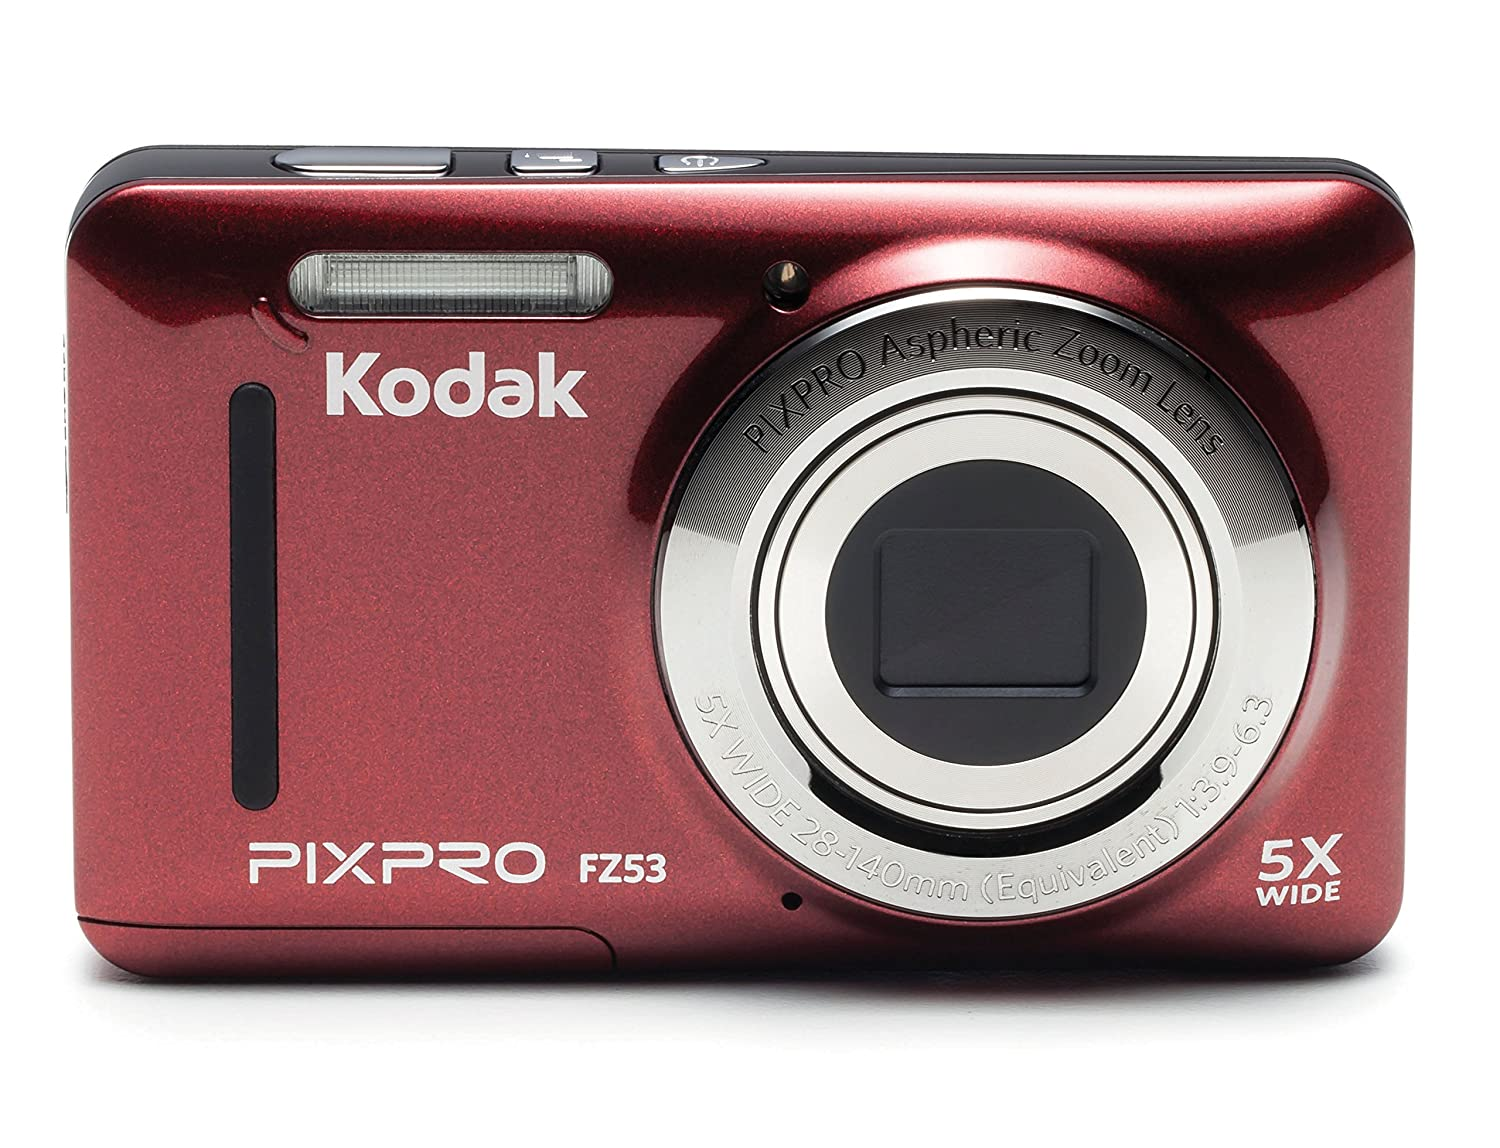 Top 10 Best Digital Cameras